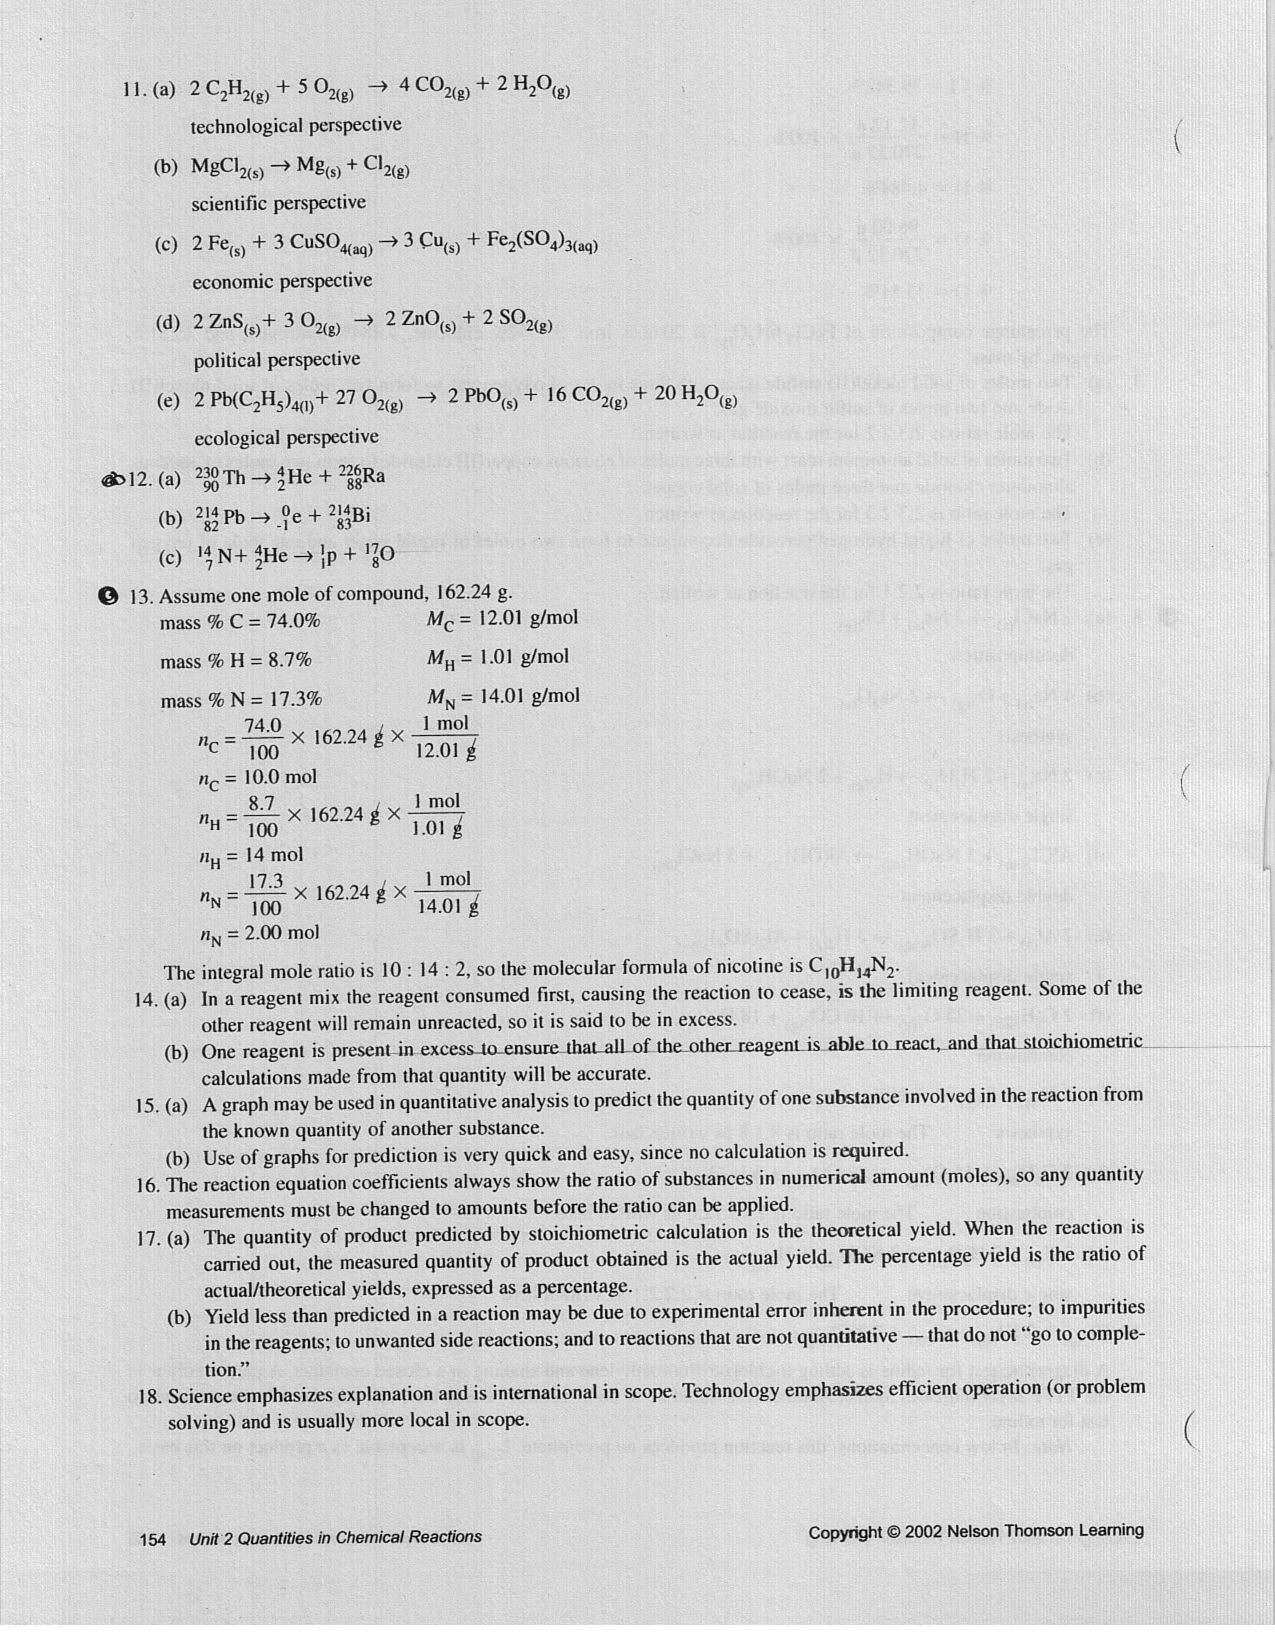 Mathball 3u chemistry sem 1 16 17 20 21 22 23 24 26 numerical answers are on page 638 sciox Choice Image